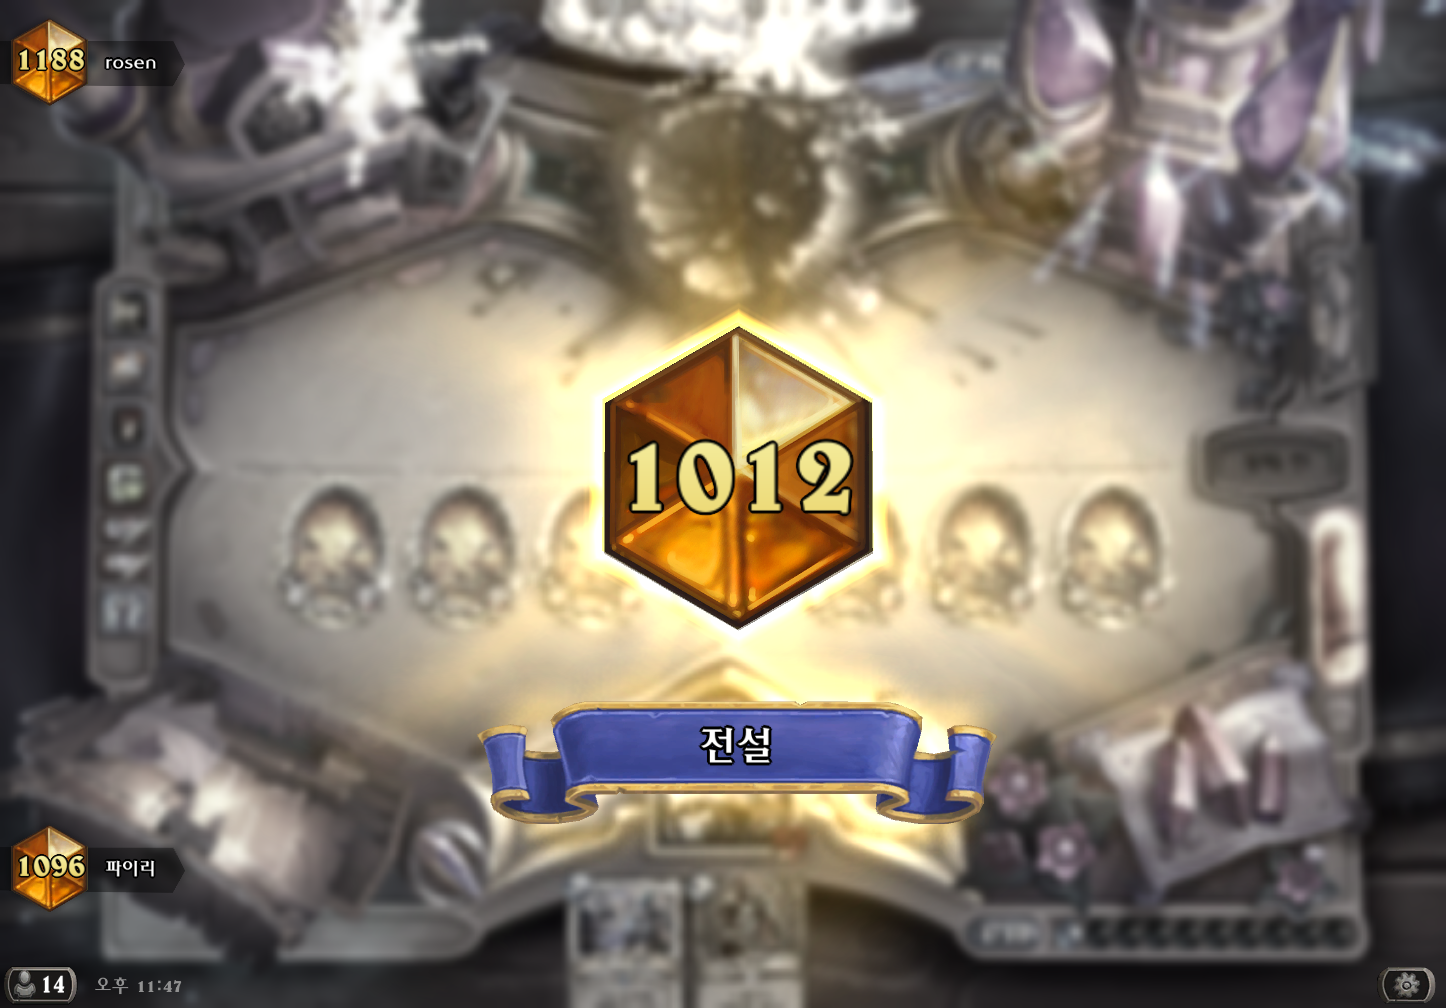 Hearthstone Screenshot 04-17-19 23.47.27.png